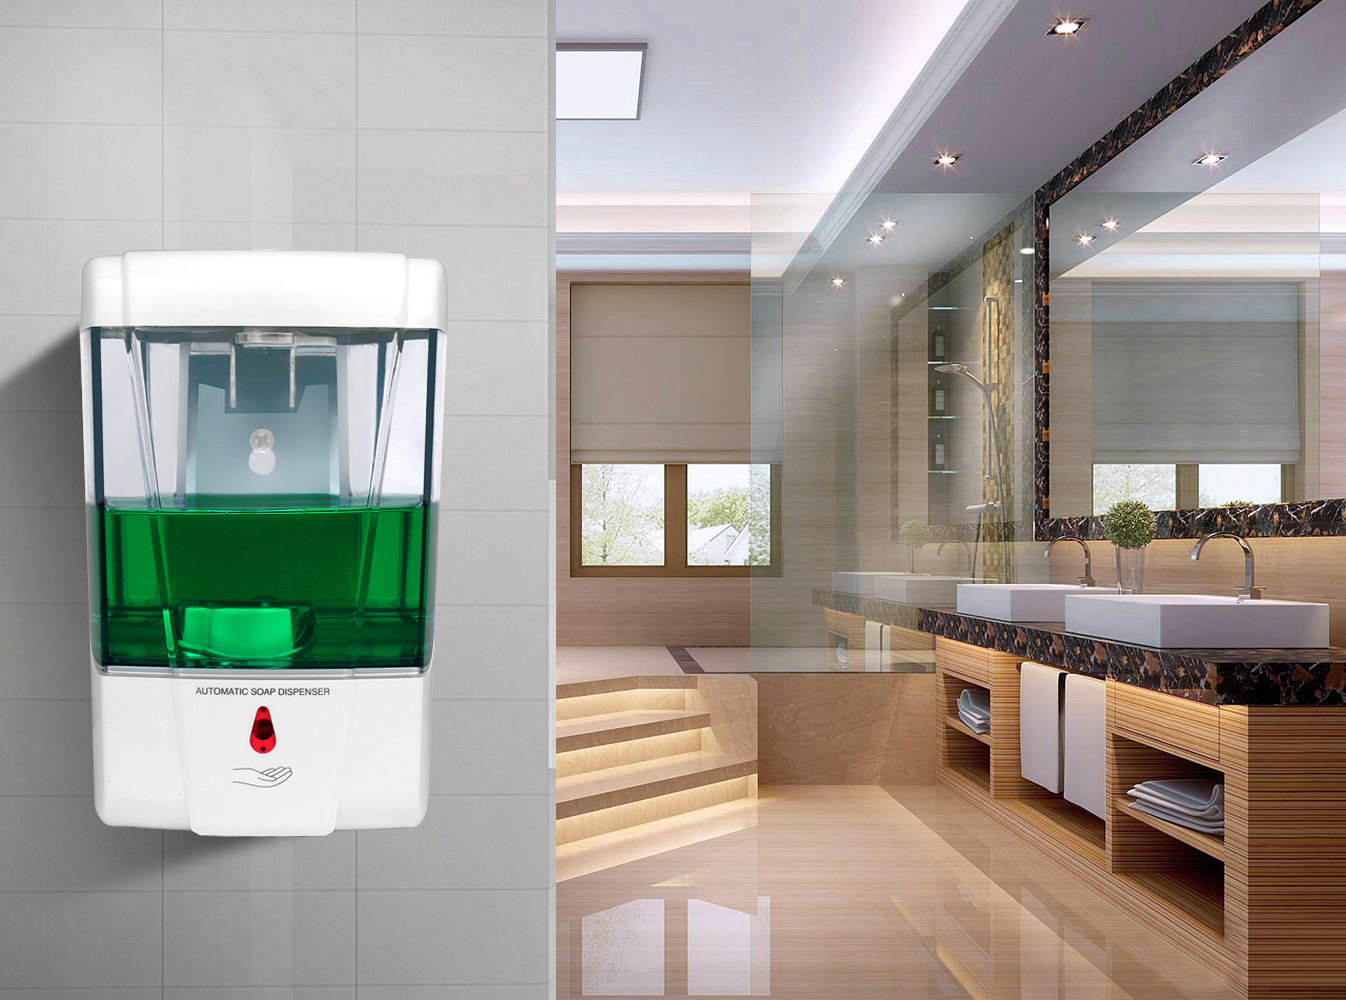 700ml Capacity Automatic Soap Dispenser Touchless Sensor Hand Sanitizer Detergent Dispenser Wall Mounted For Bathroom Kitchen 700ml Capacity Automatic Soap Dispenser Touchless Sensor Hand Sanitizer Detergent Dispenser Wall Mounted For Bathroom Kitchen